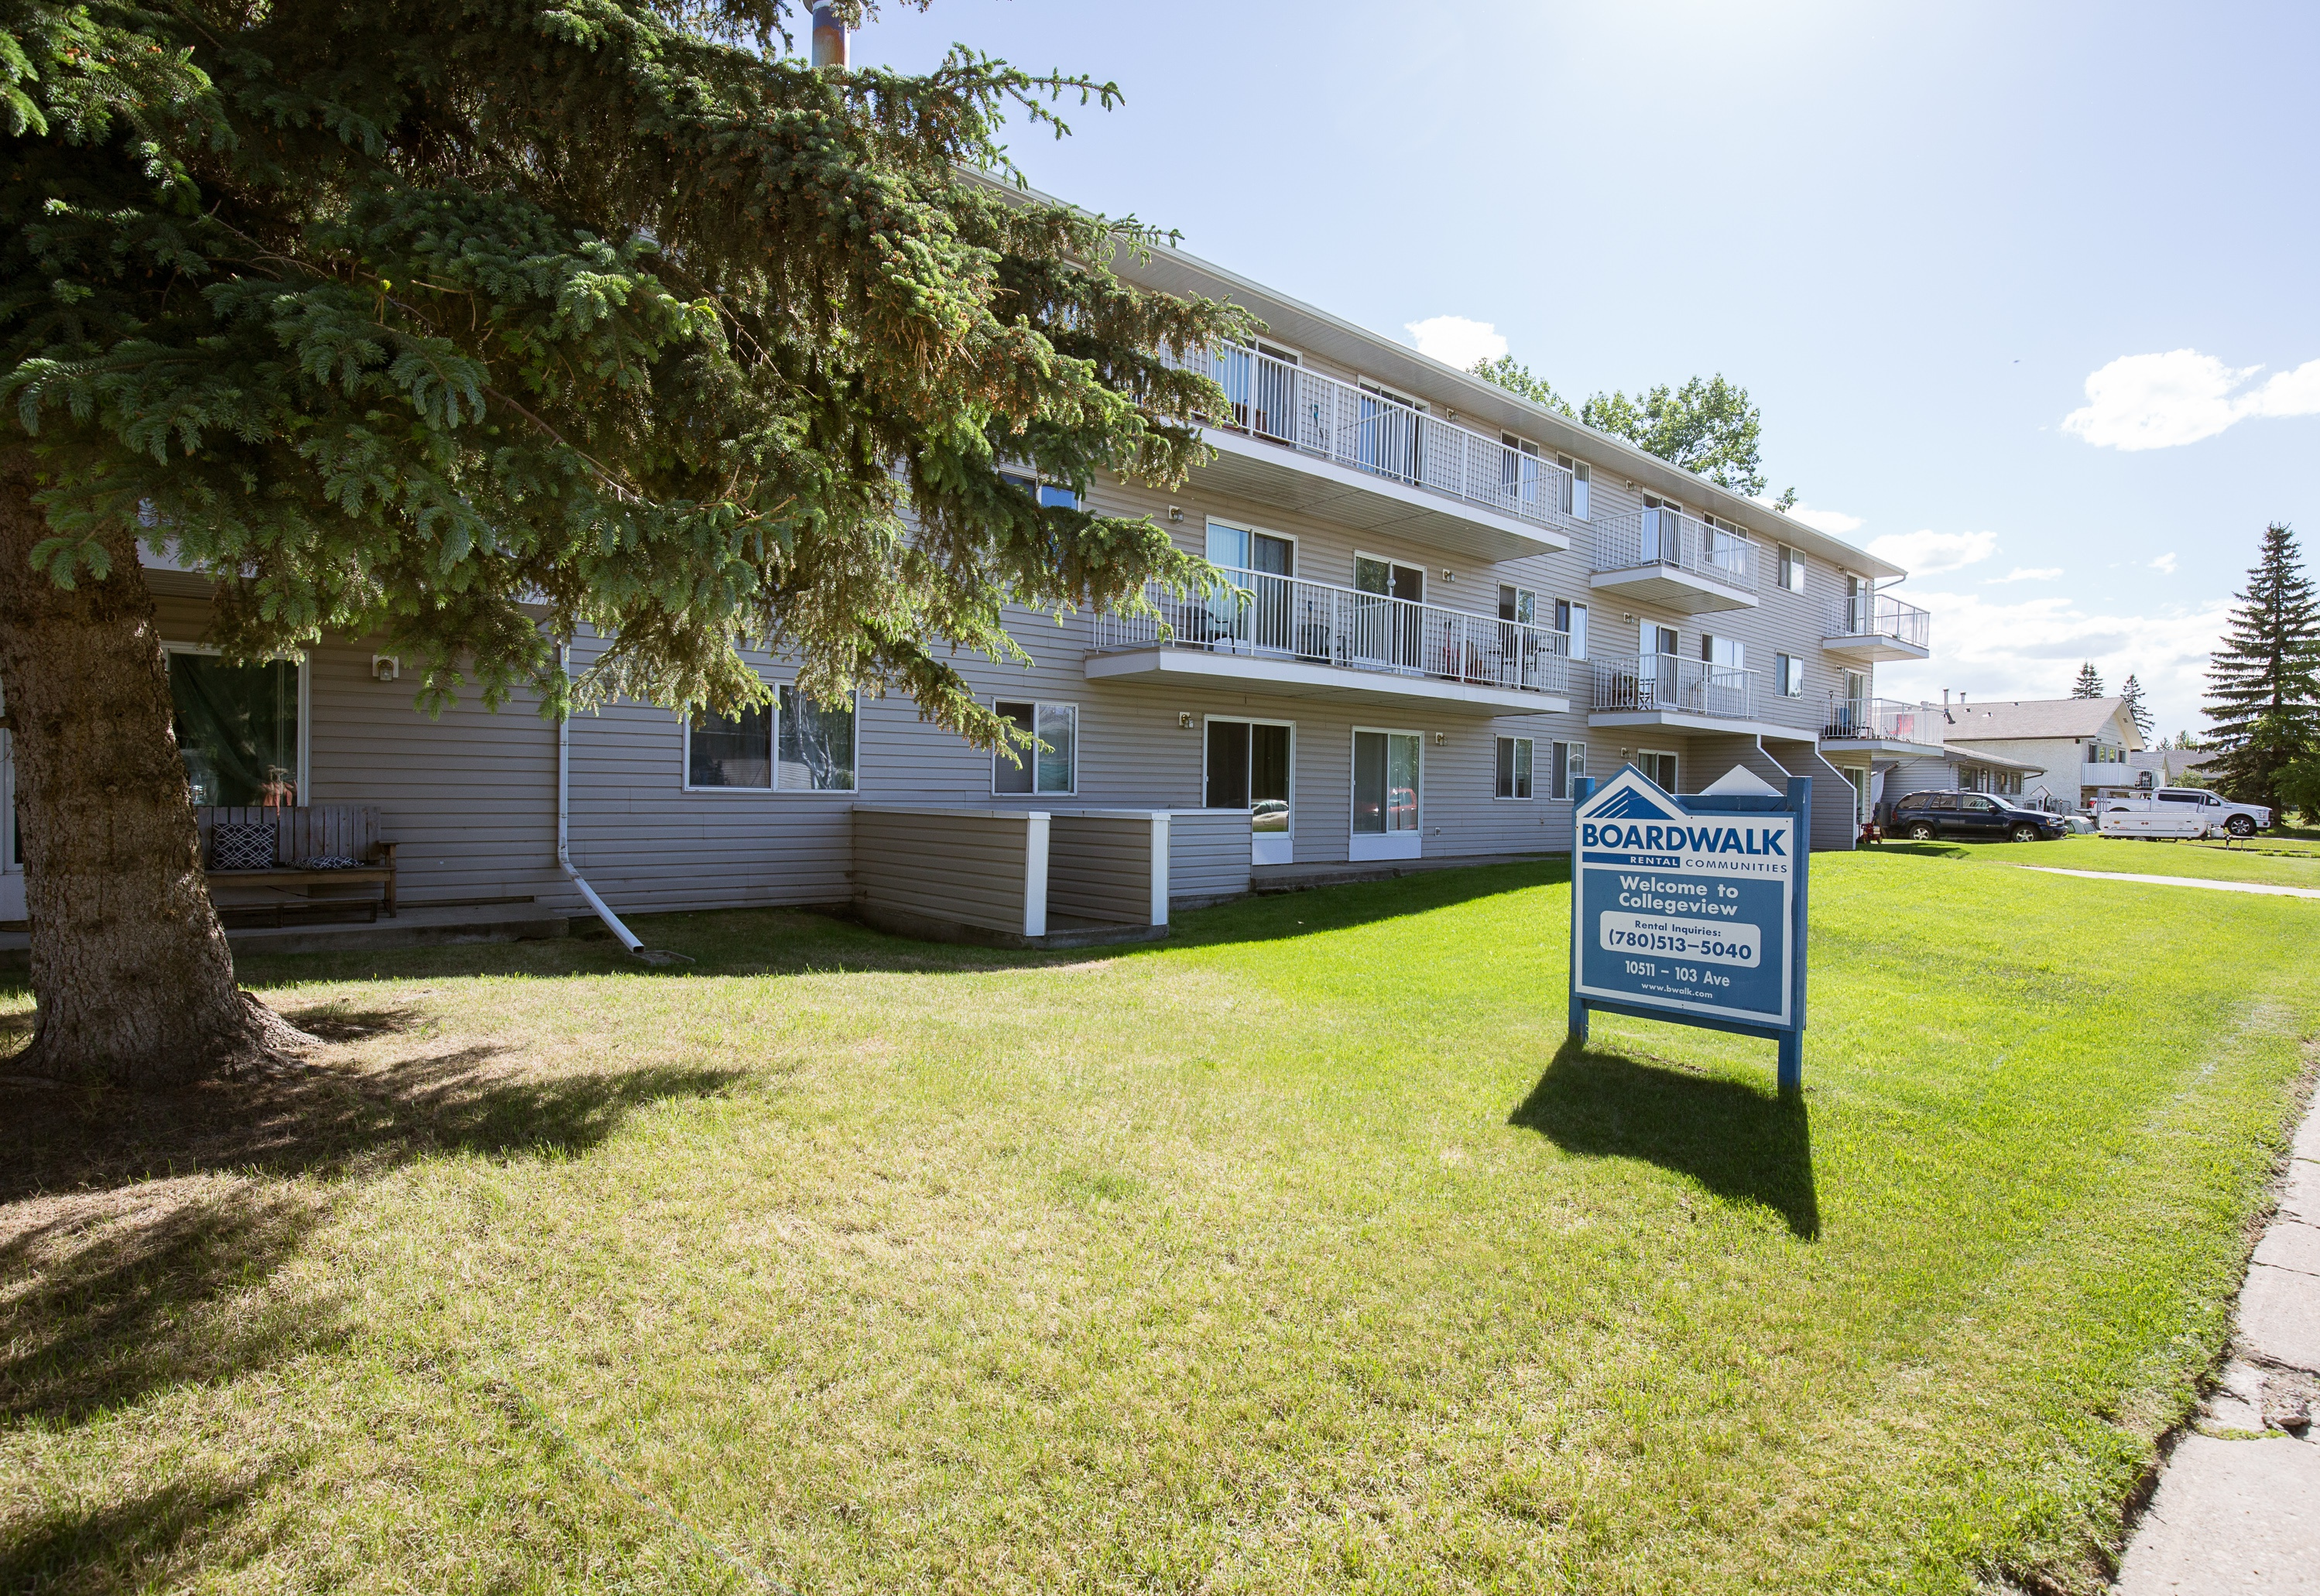 10511 - 103 Ave in Grande Prairie, AB is Now Available